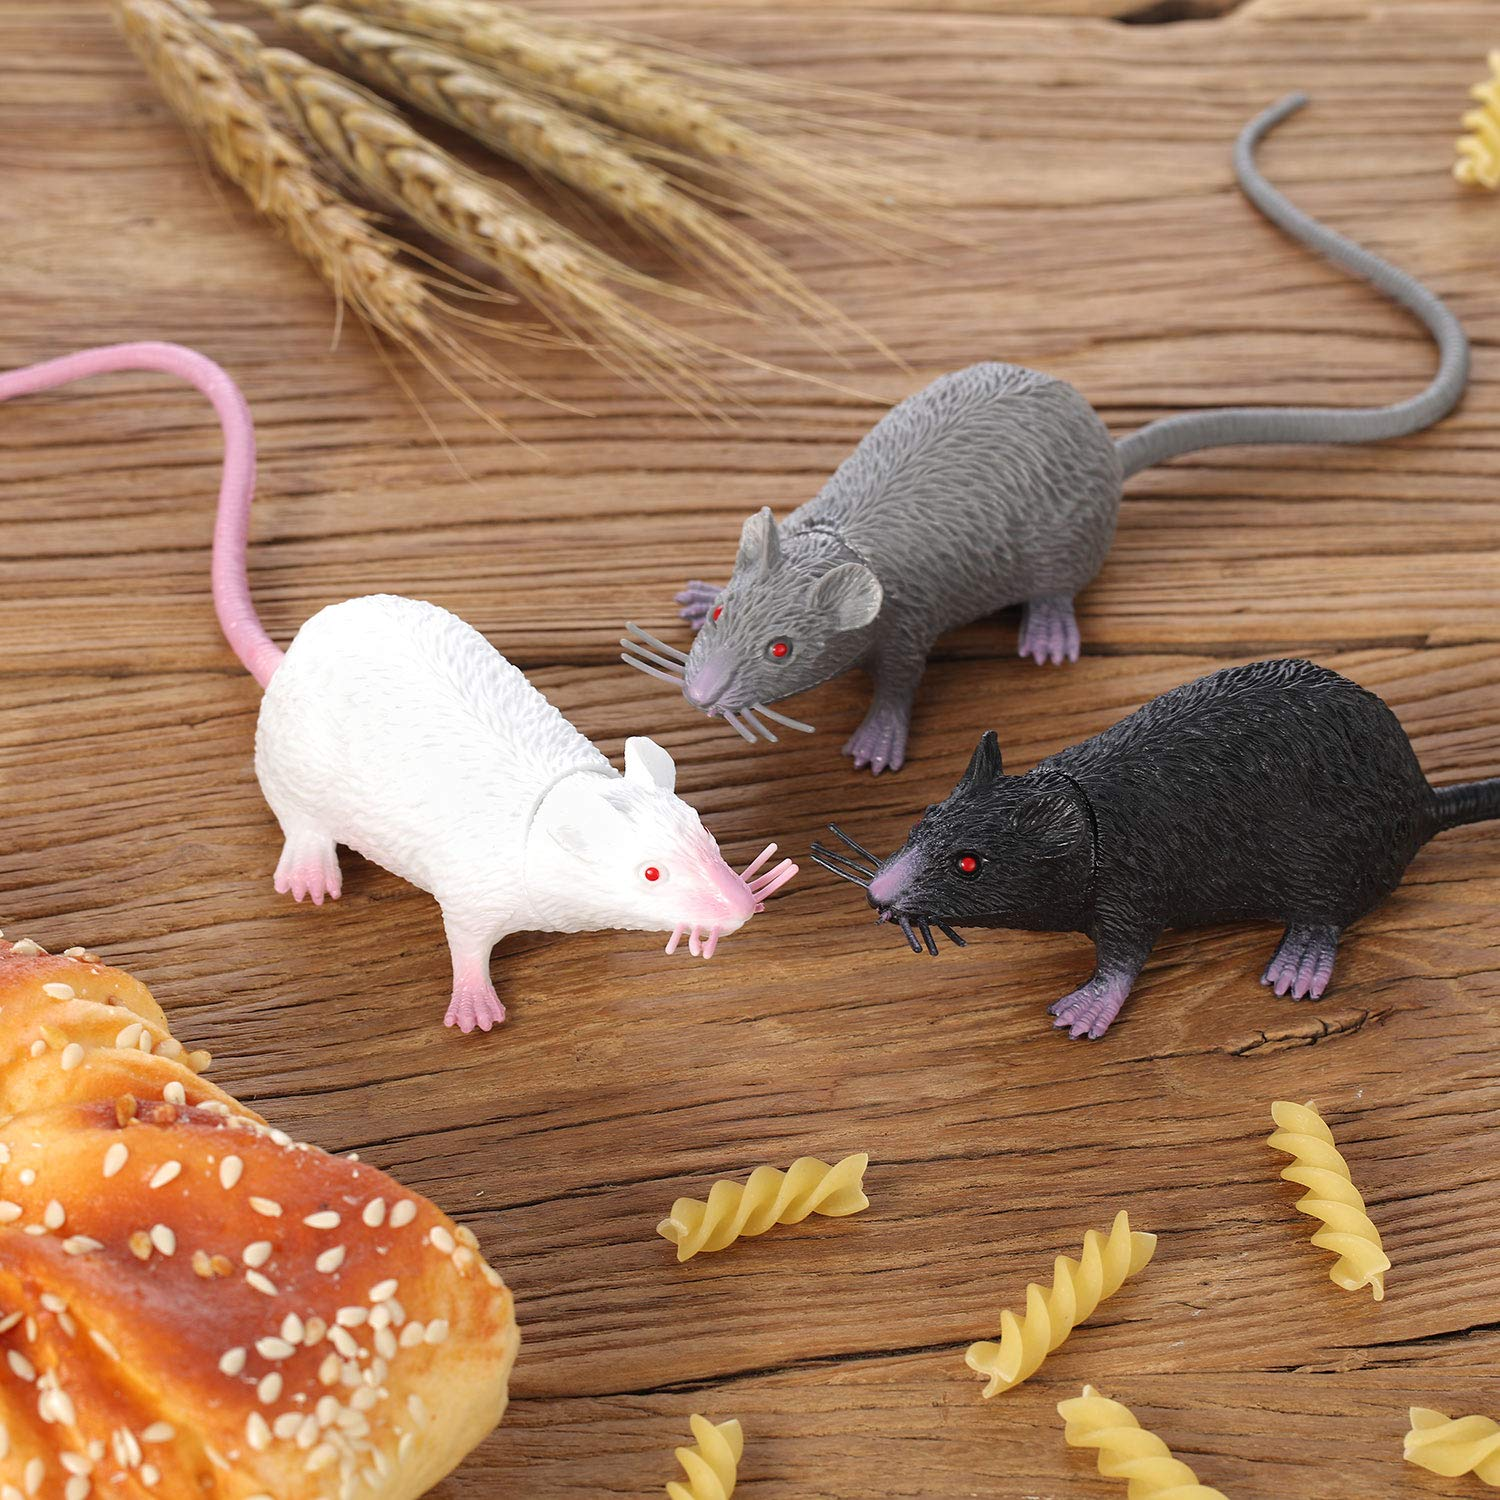 Party Props Cats and Dogs Interesting Toys Halloween Decoration Maggot Toy Plastic Rat Boao 6 Pieces Halloween Fake Rat Suit Terrible Prank Props Entertainment Simulation Mouse